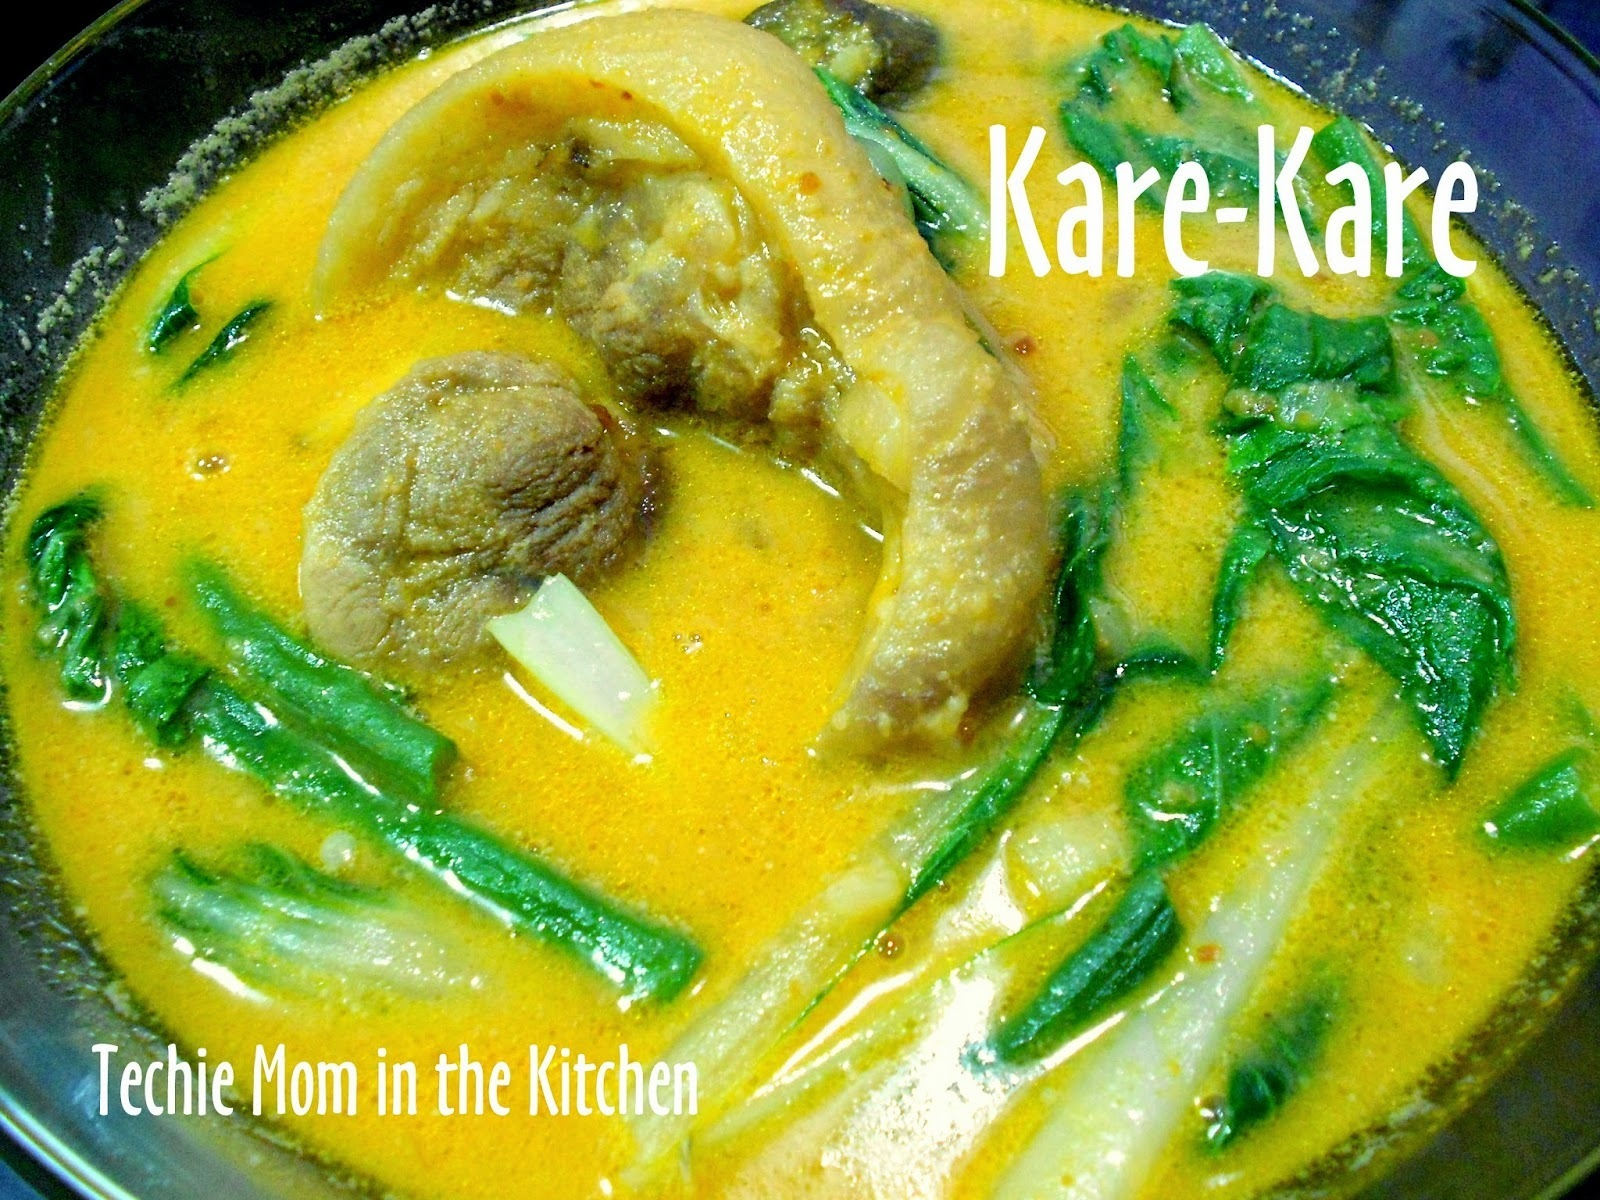 PATA KARE-KARE ala Barrio Fiesta  - Easy Version  (Pork Leg  Stew in Savory Peanut Sauce)